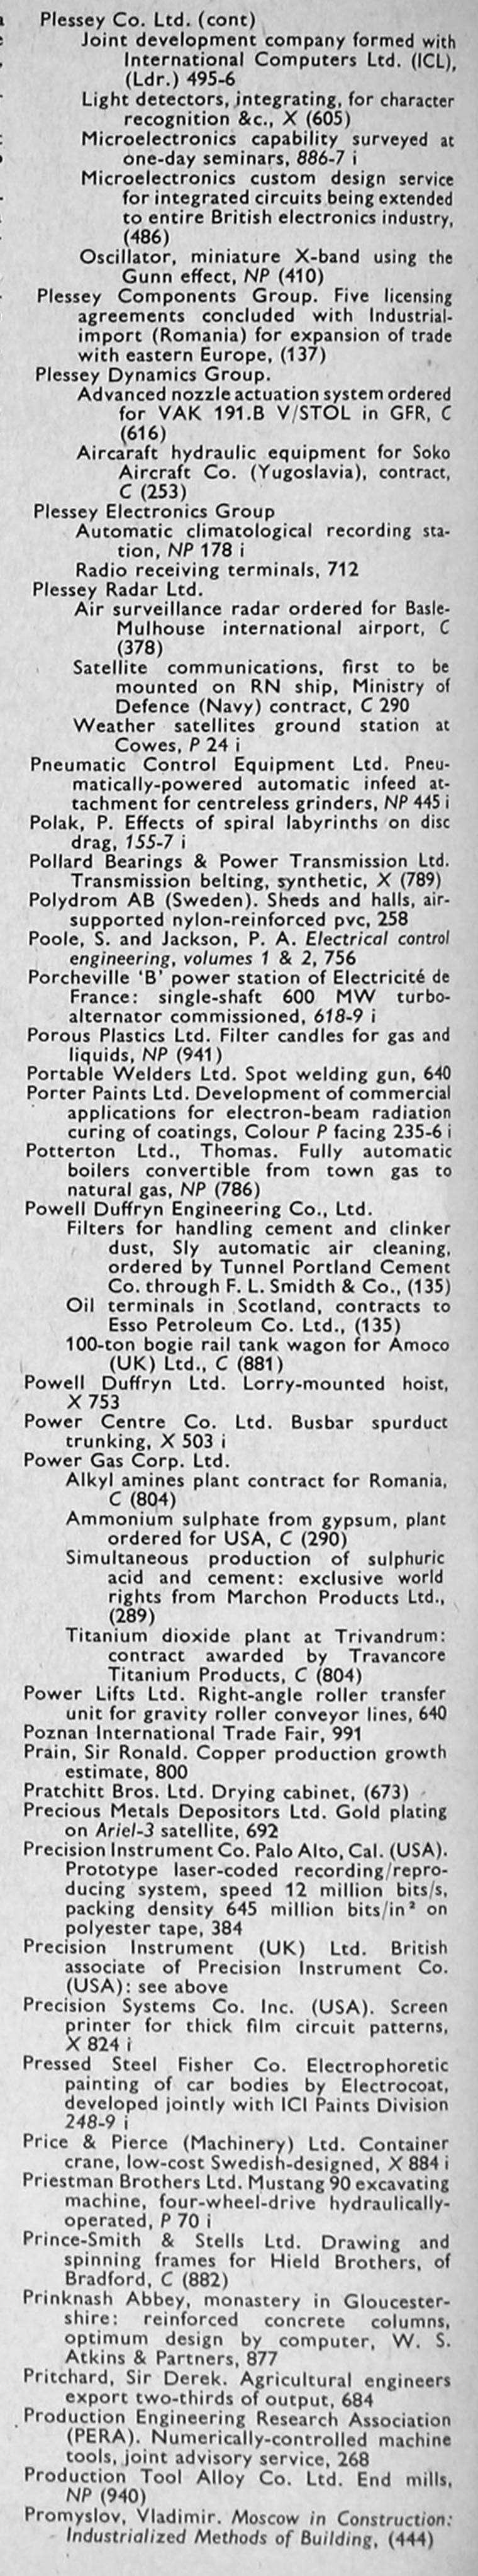 Circuits zone 187 1001 electronic project circuits - The Engineer 1968 Jan Jun Index